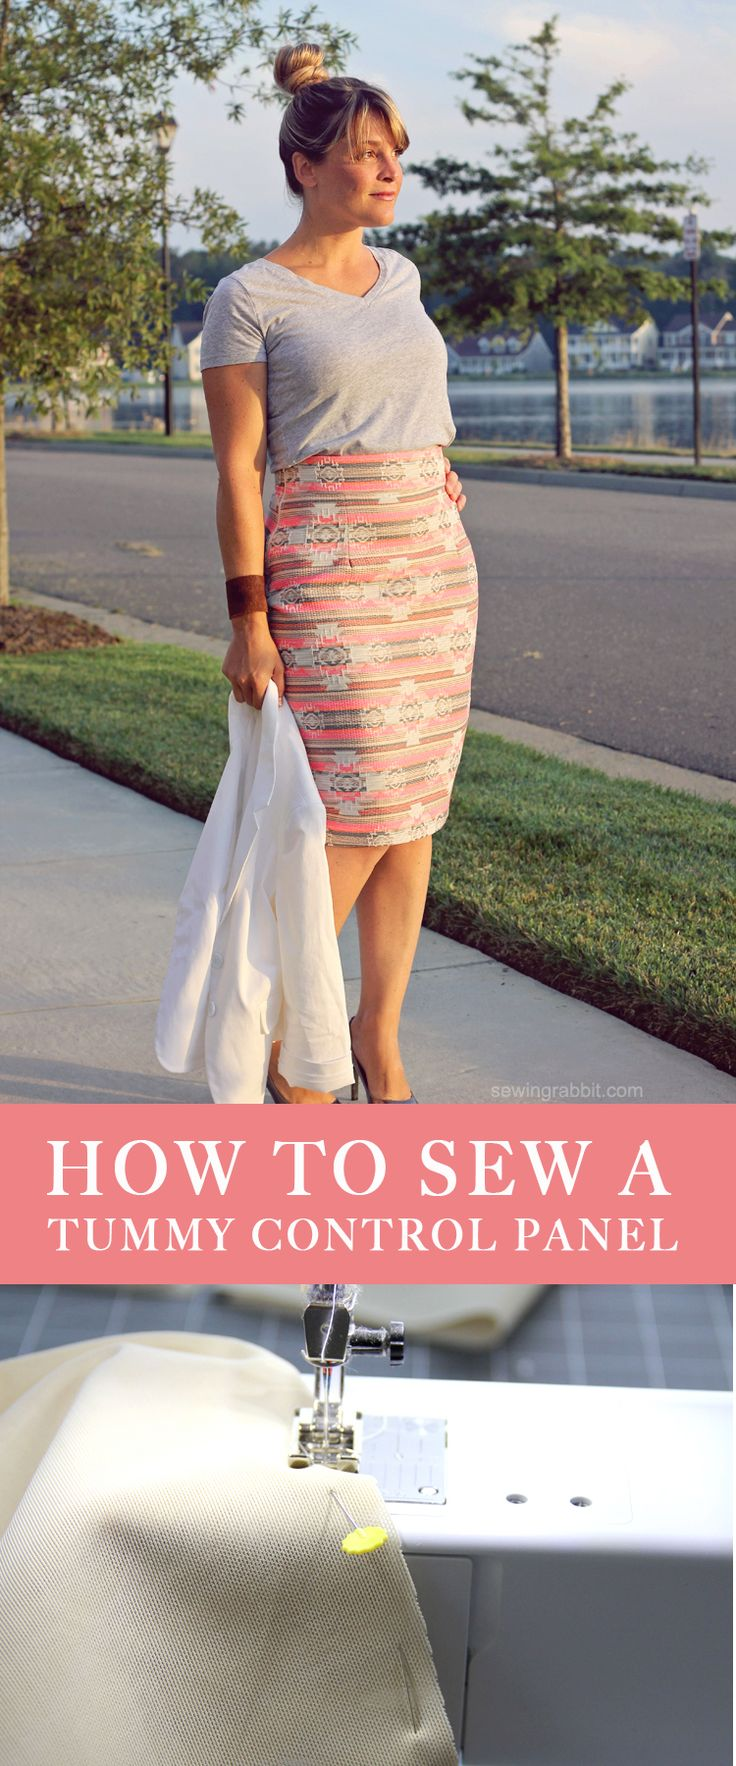 [how to sew a tummy control panel] putting power mesh into a pencil skirt in lieu of lining #LetsSew